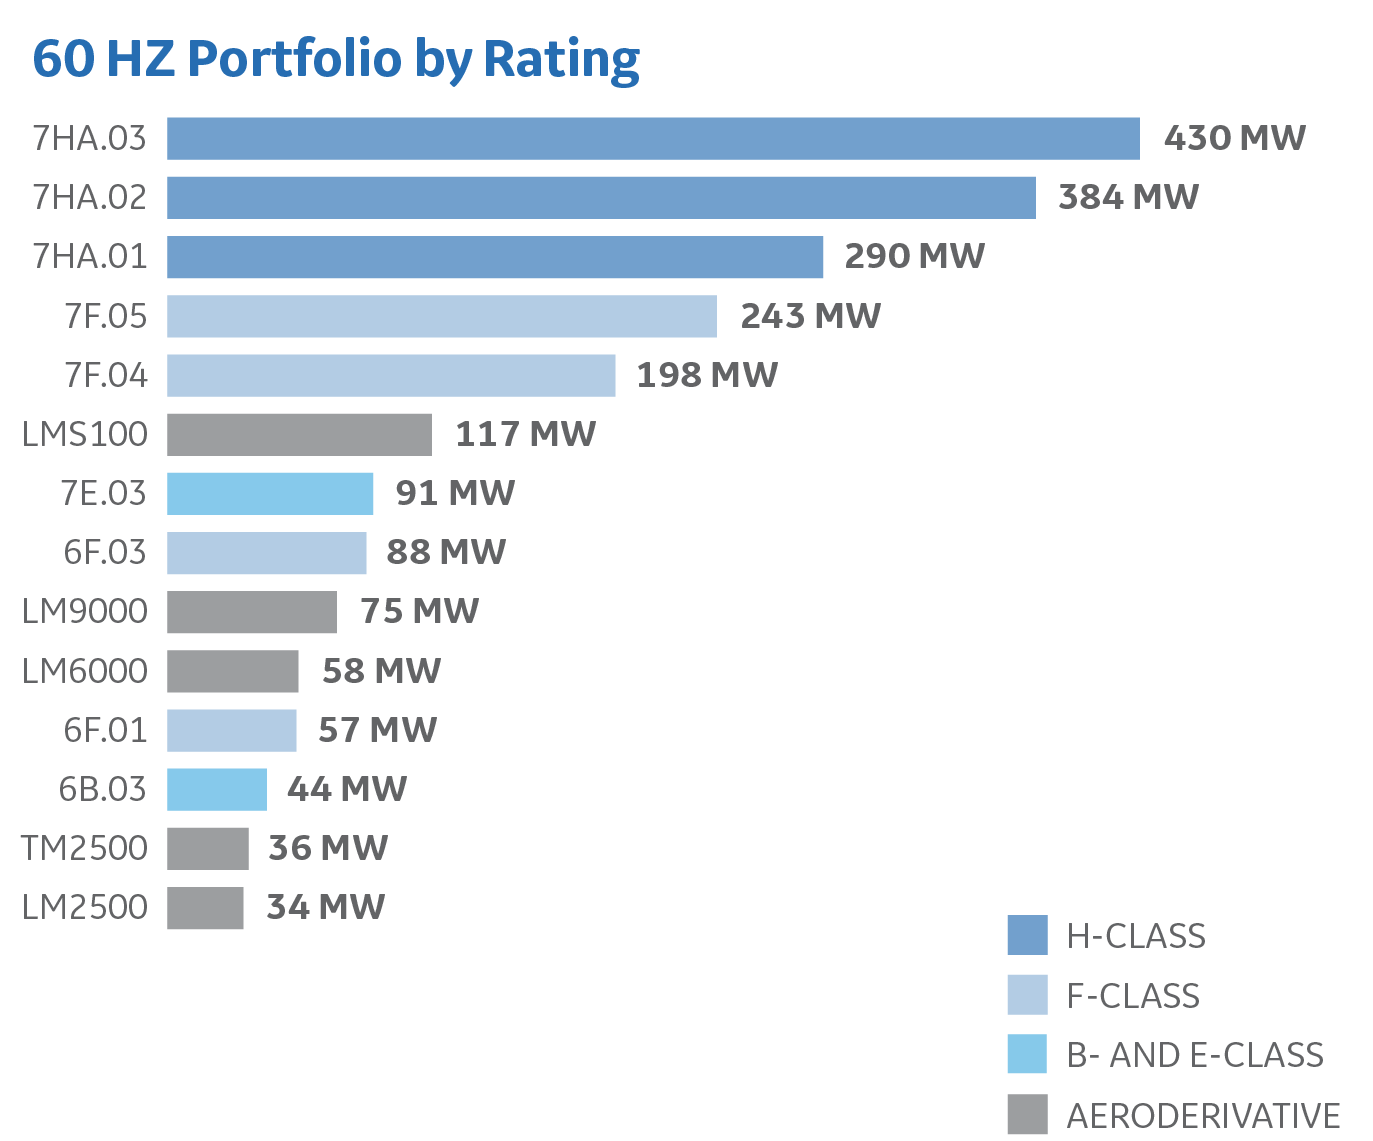 60 Hz Portfolios by Rating_R5